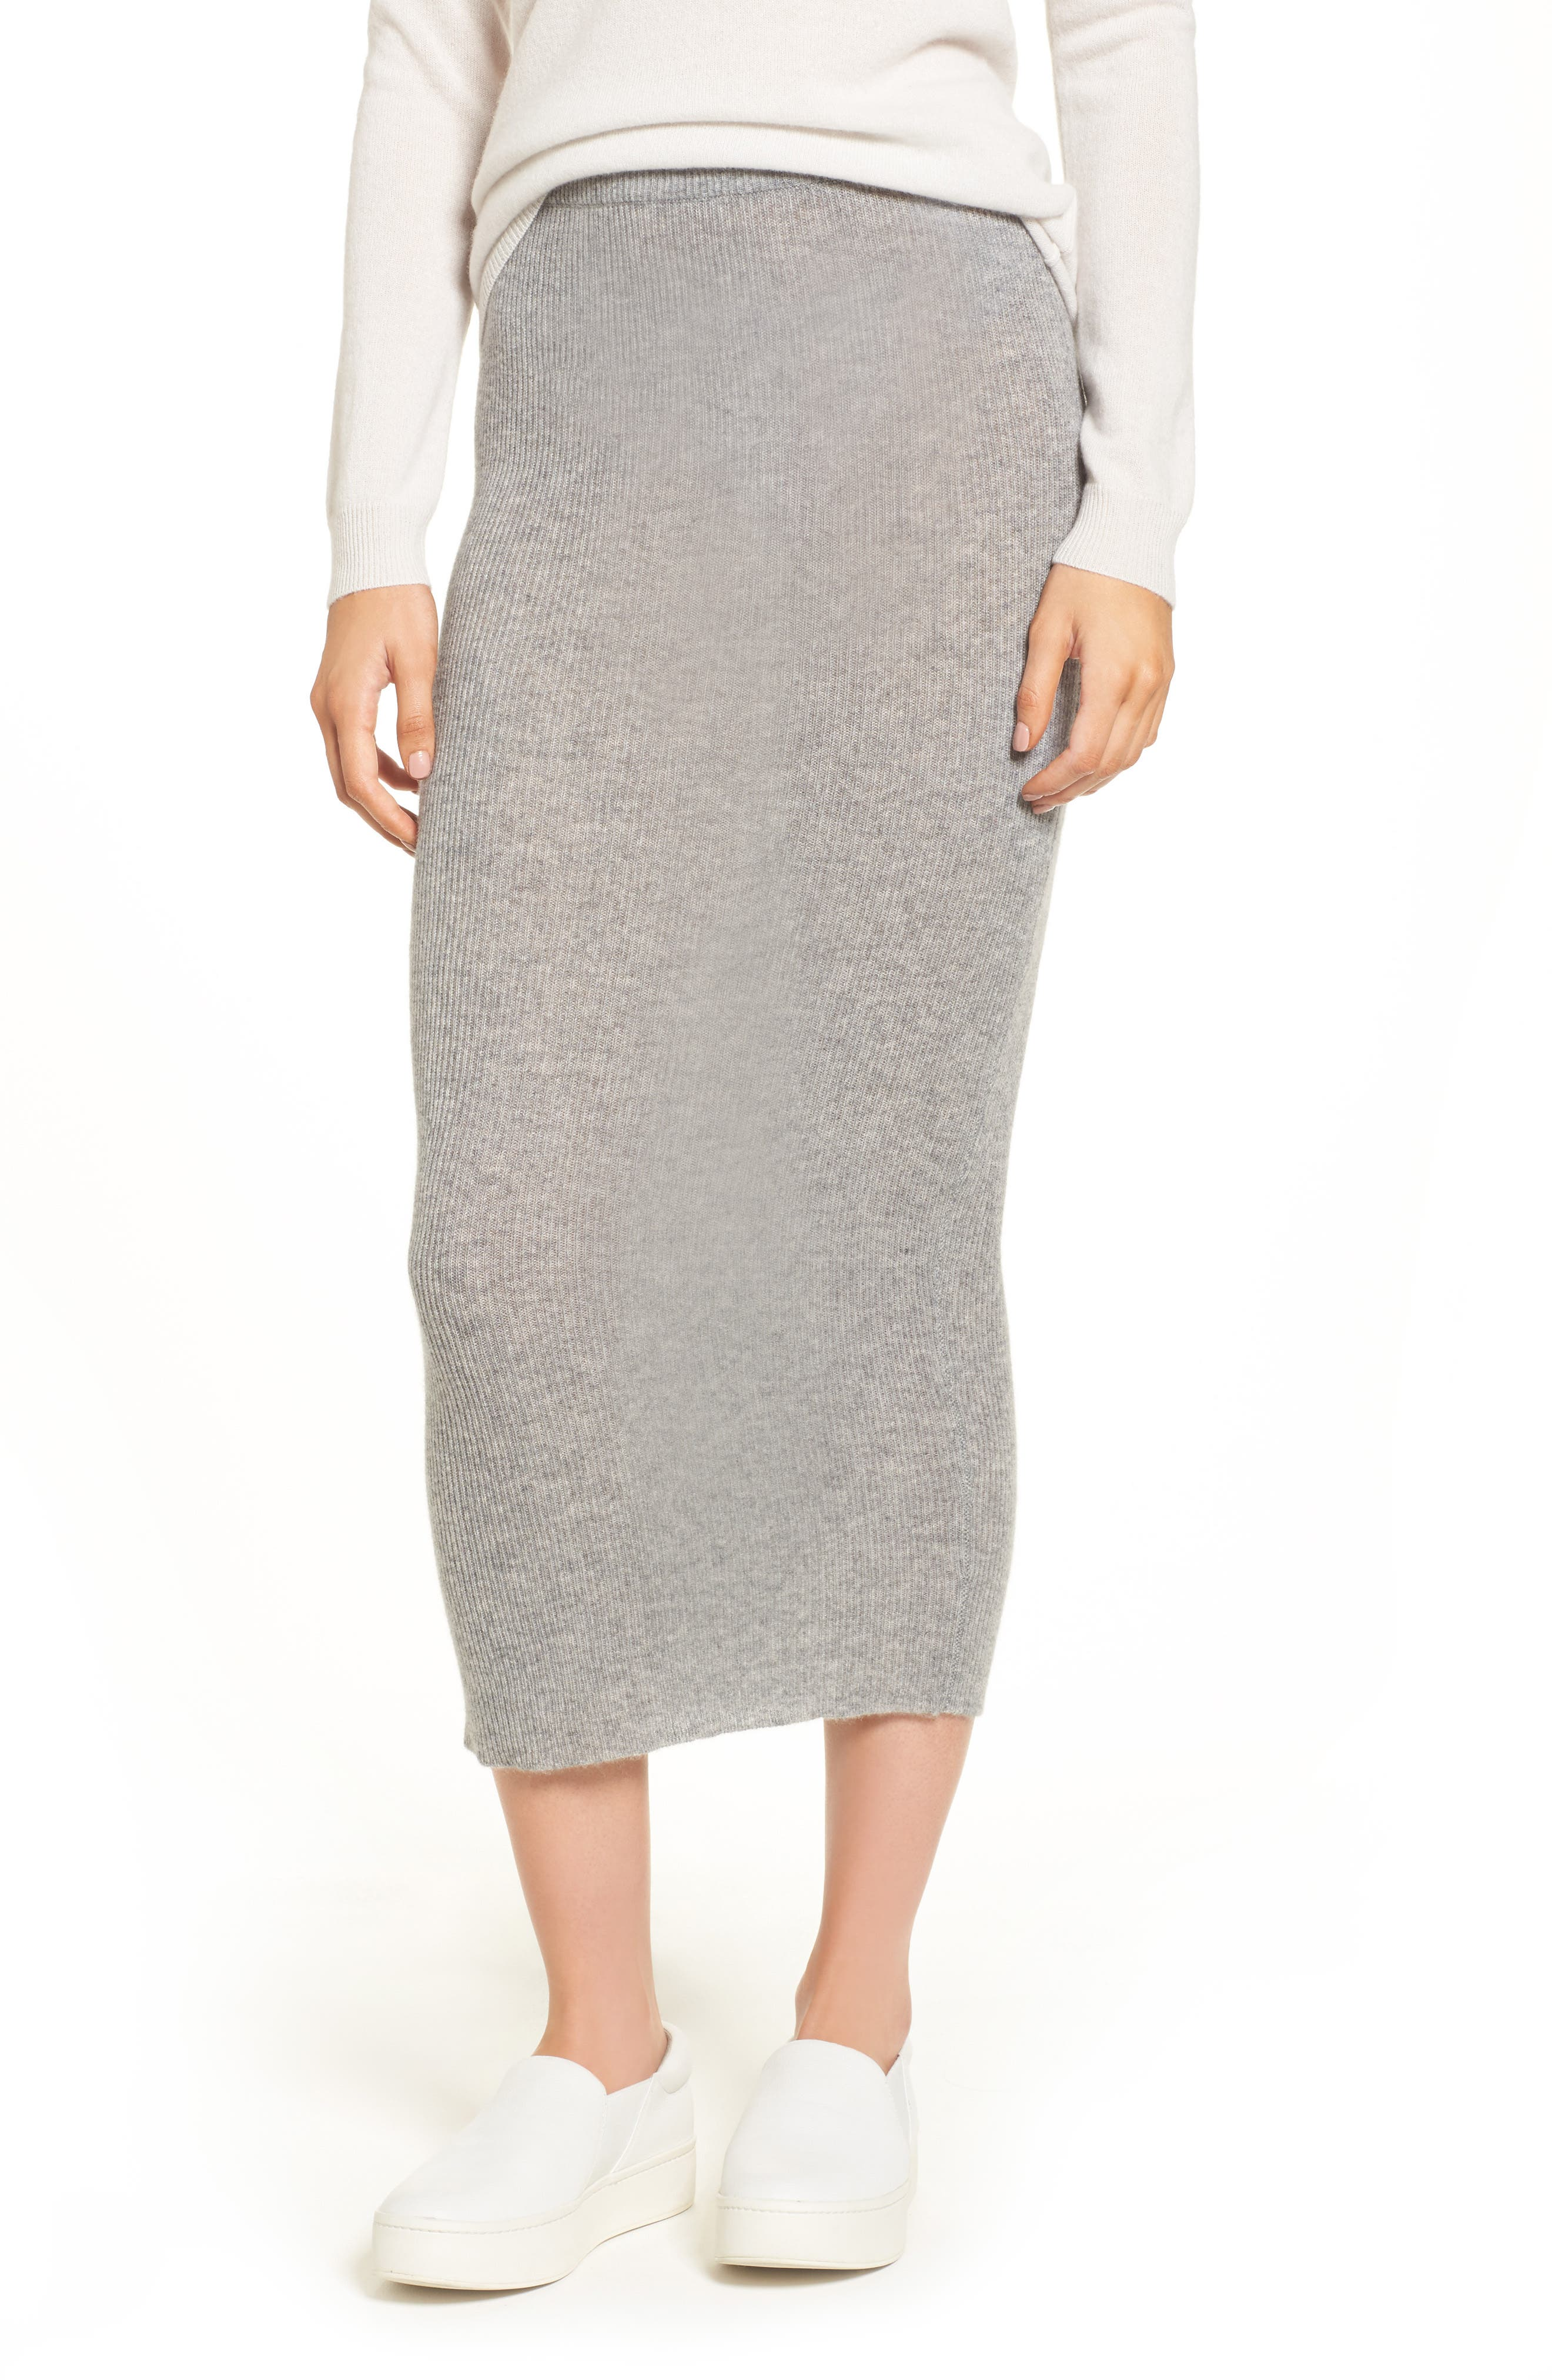 Cashmere Skirt,                             Main thumbnail 1, color,                             086